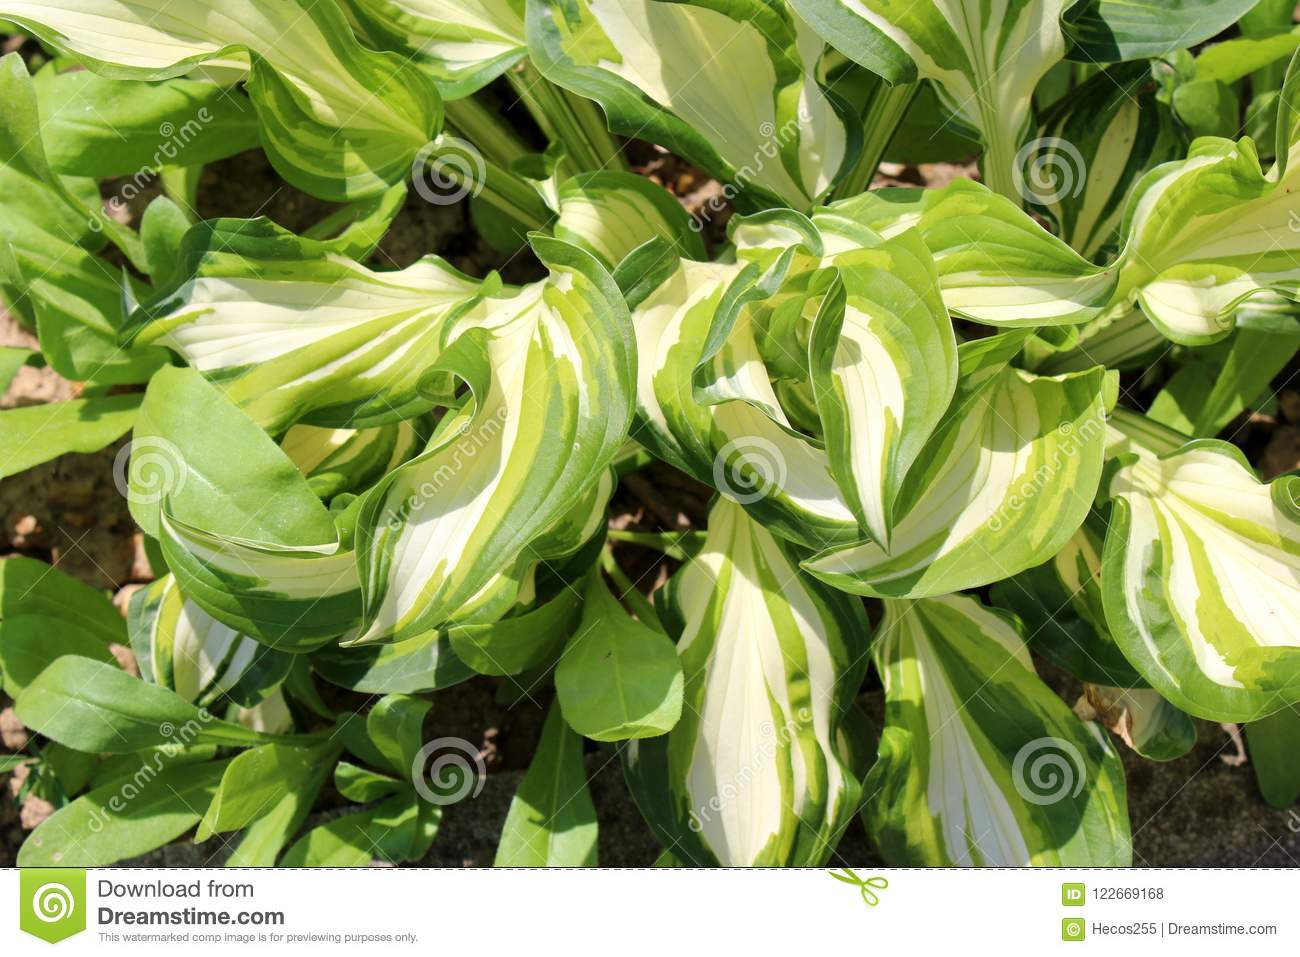 Plantain Lily Or Hosta Foliage Plant With Large Ribbed Light Green